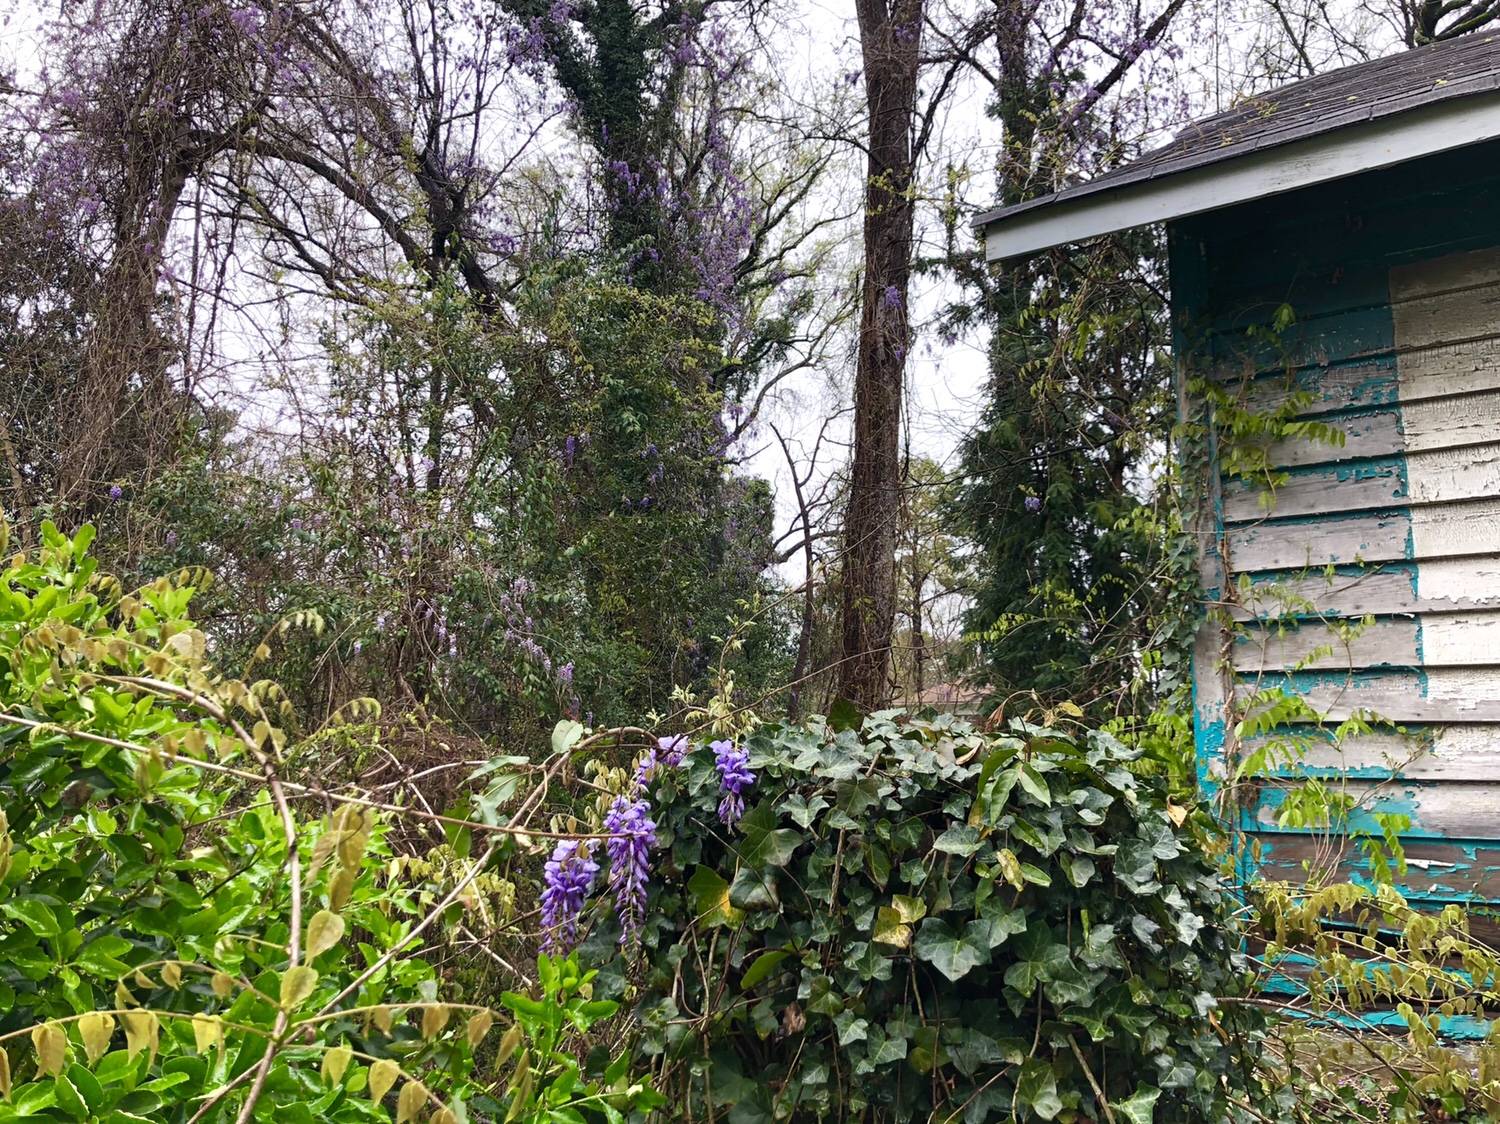 A landscape photograph. The background is made of a gray sky peaking through the branches of leafless trees which are covered in cascades of blooming wisteria, appearing as a purple haze around the branches. The foreground is vibrant green, mostly wisteria and ivy, a few blooms of wisteria clearly visible. To the right in the foreground is the corner of an abandoned house, paint peeled away and mostly gray, darker than the sky, with remnants of vibrant teal pain along the bottom edges. Photograph by author.